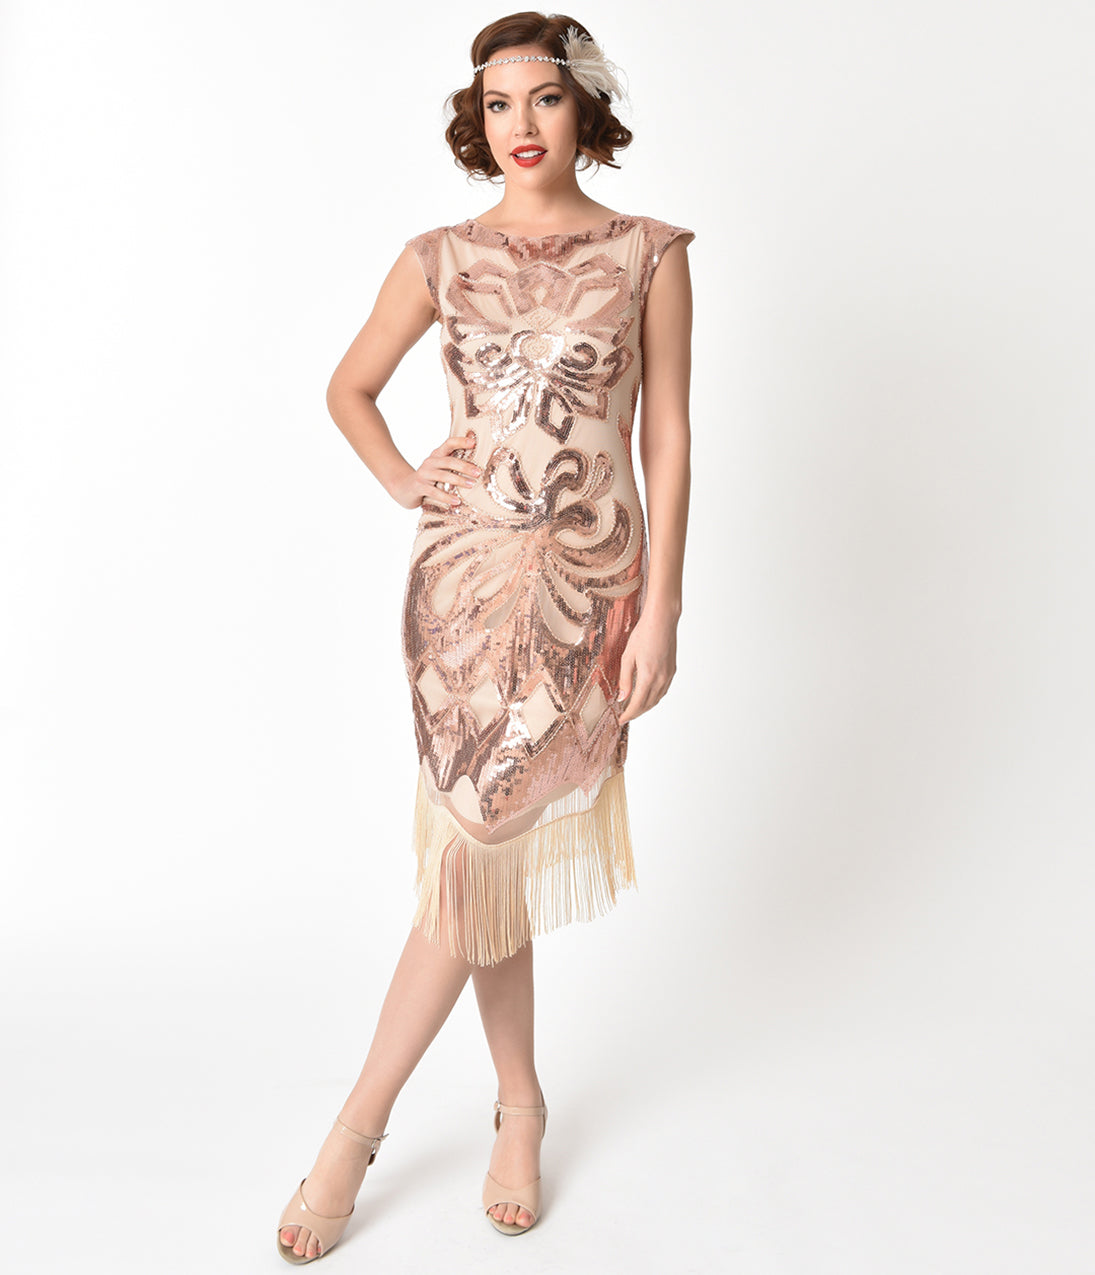 1920s Style Dresses, Flapper Dresses Unique Vintage 1920S Style Beige  Rose Gold Sequin Edwige Flapper Dress $83.00 AT vintagedancer.com